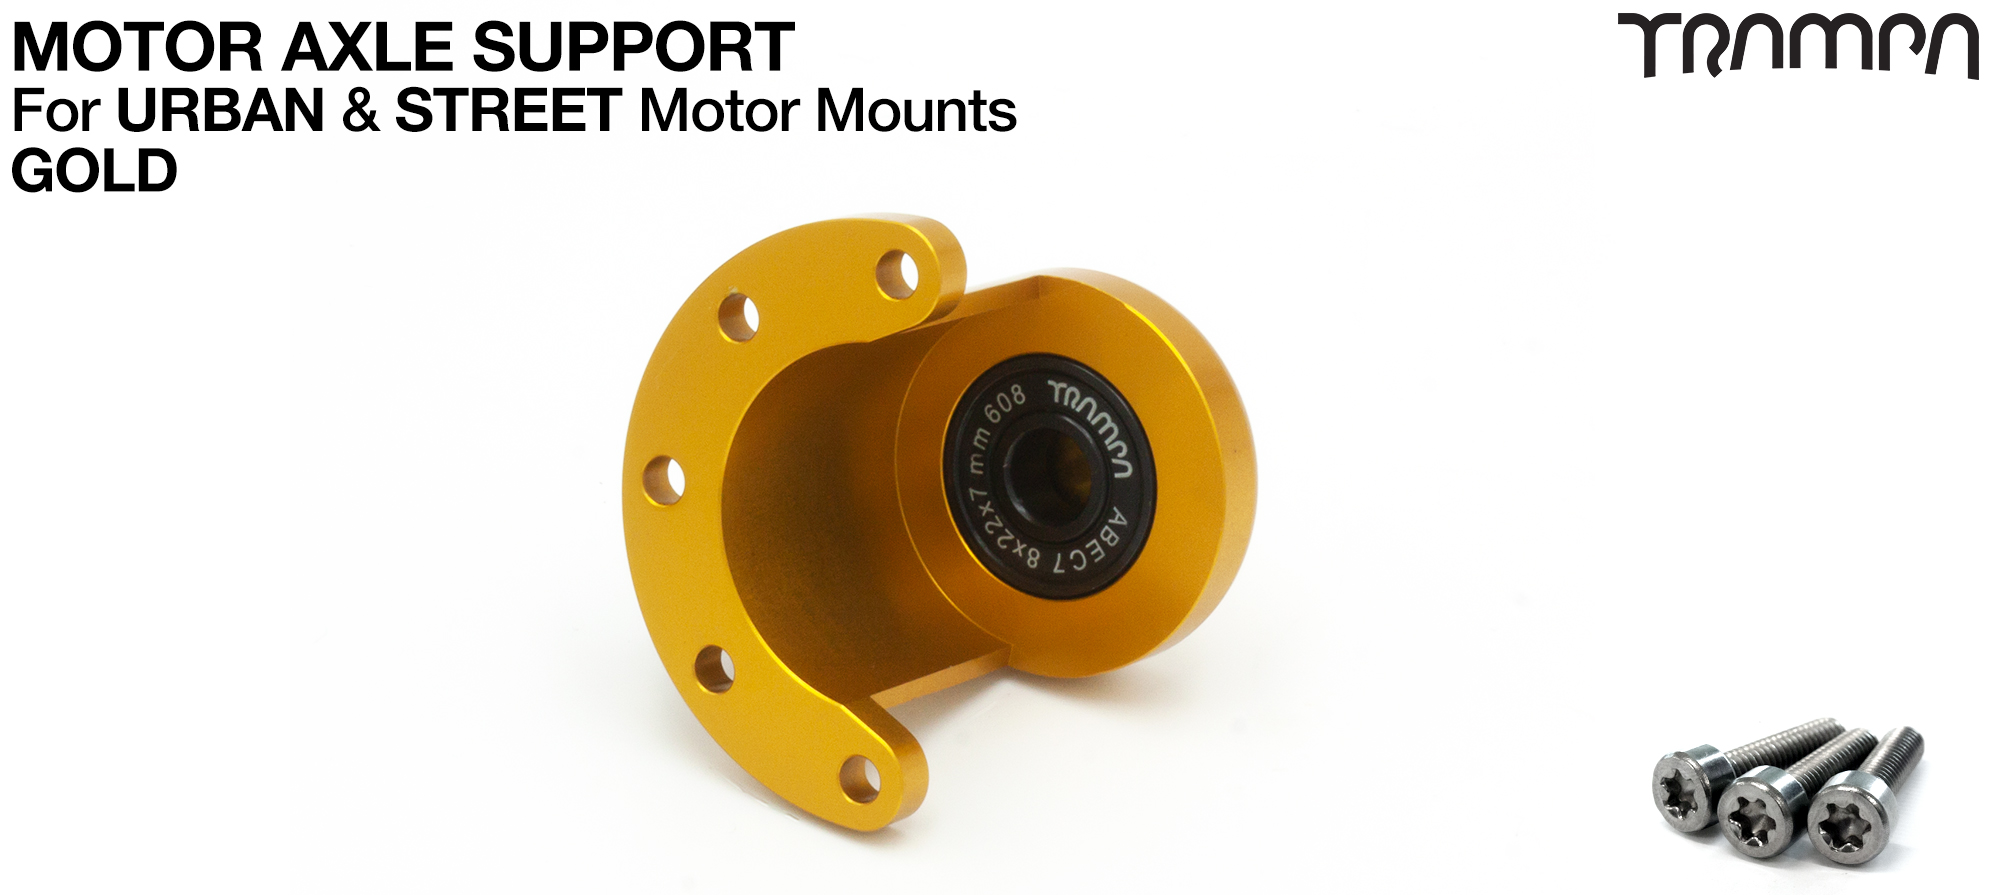 Motor Axle Support Housing with TRAMPA R608 8x22x7mm Bearing, C-Clip & Stainless Steel fixing Bolts for ORRSOM Longboard Motor Mounts  - GOLD